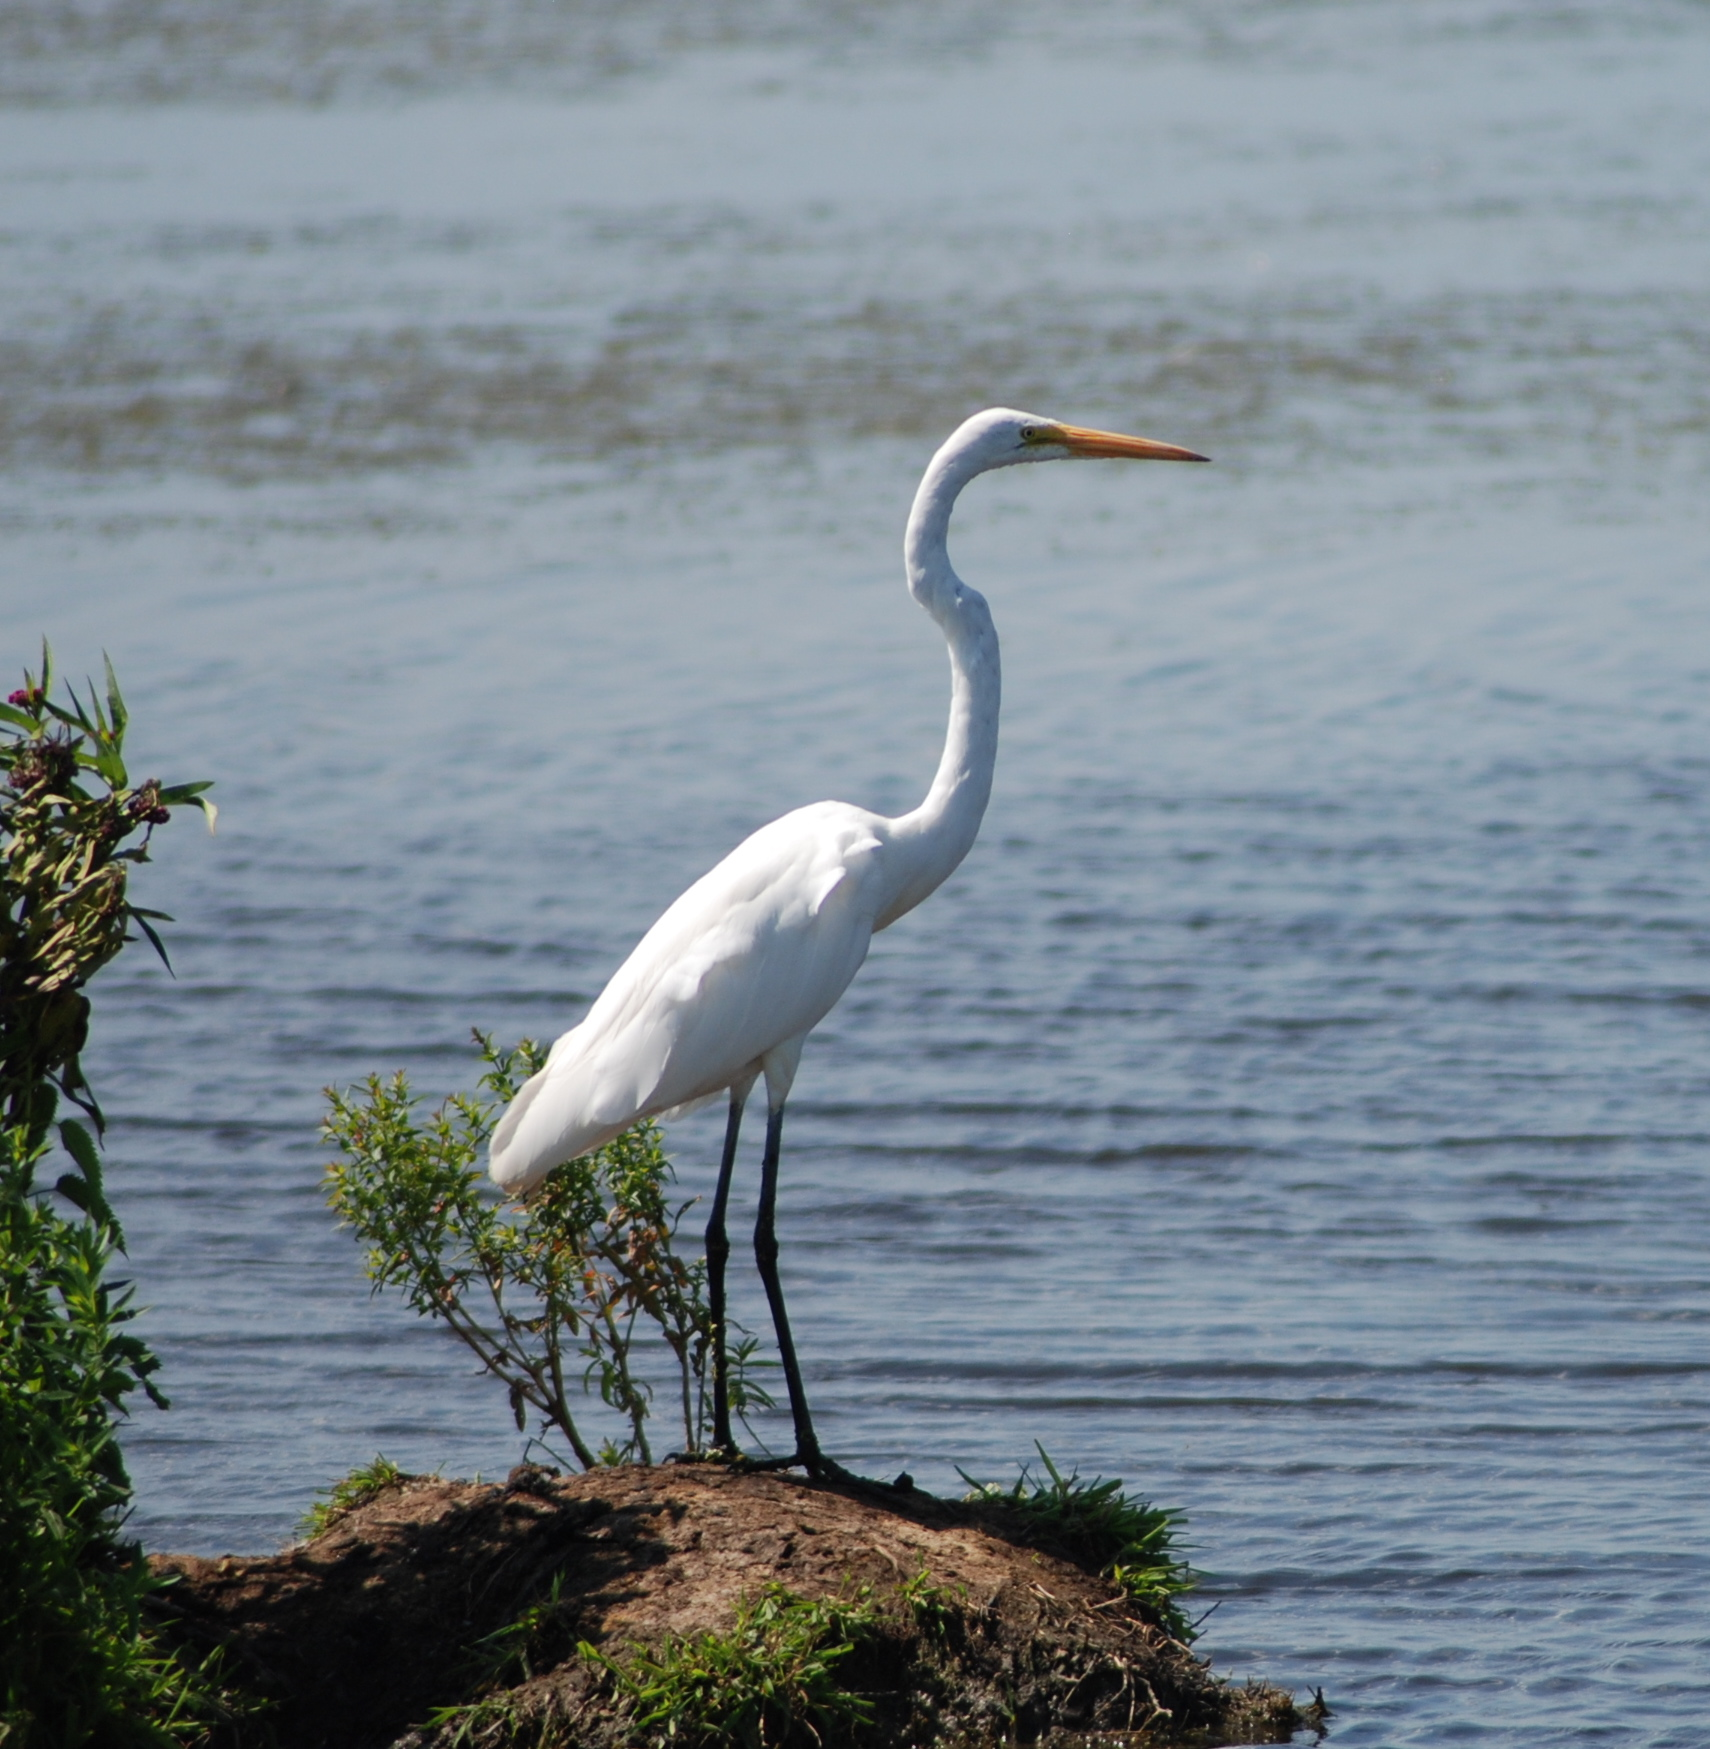 Great Snowy Egret